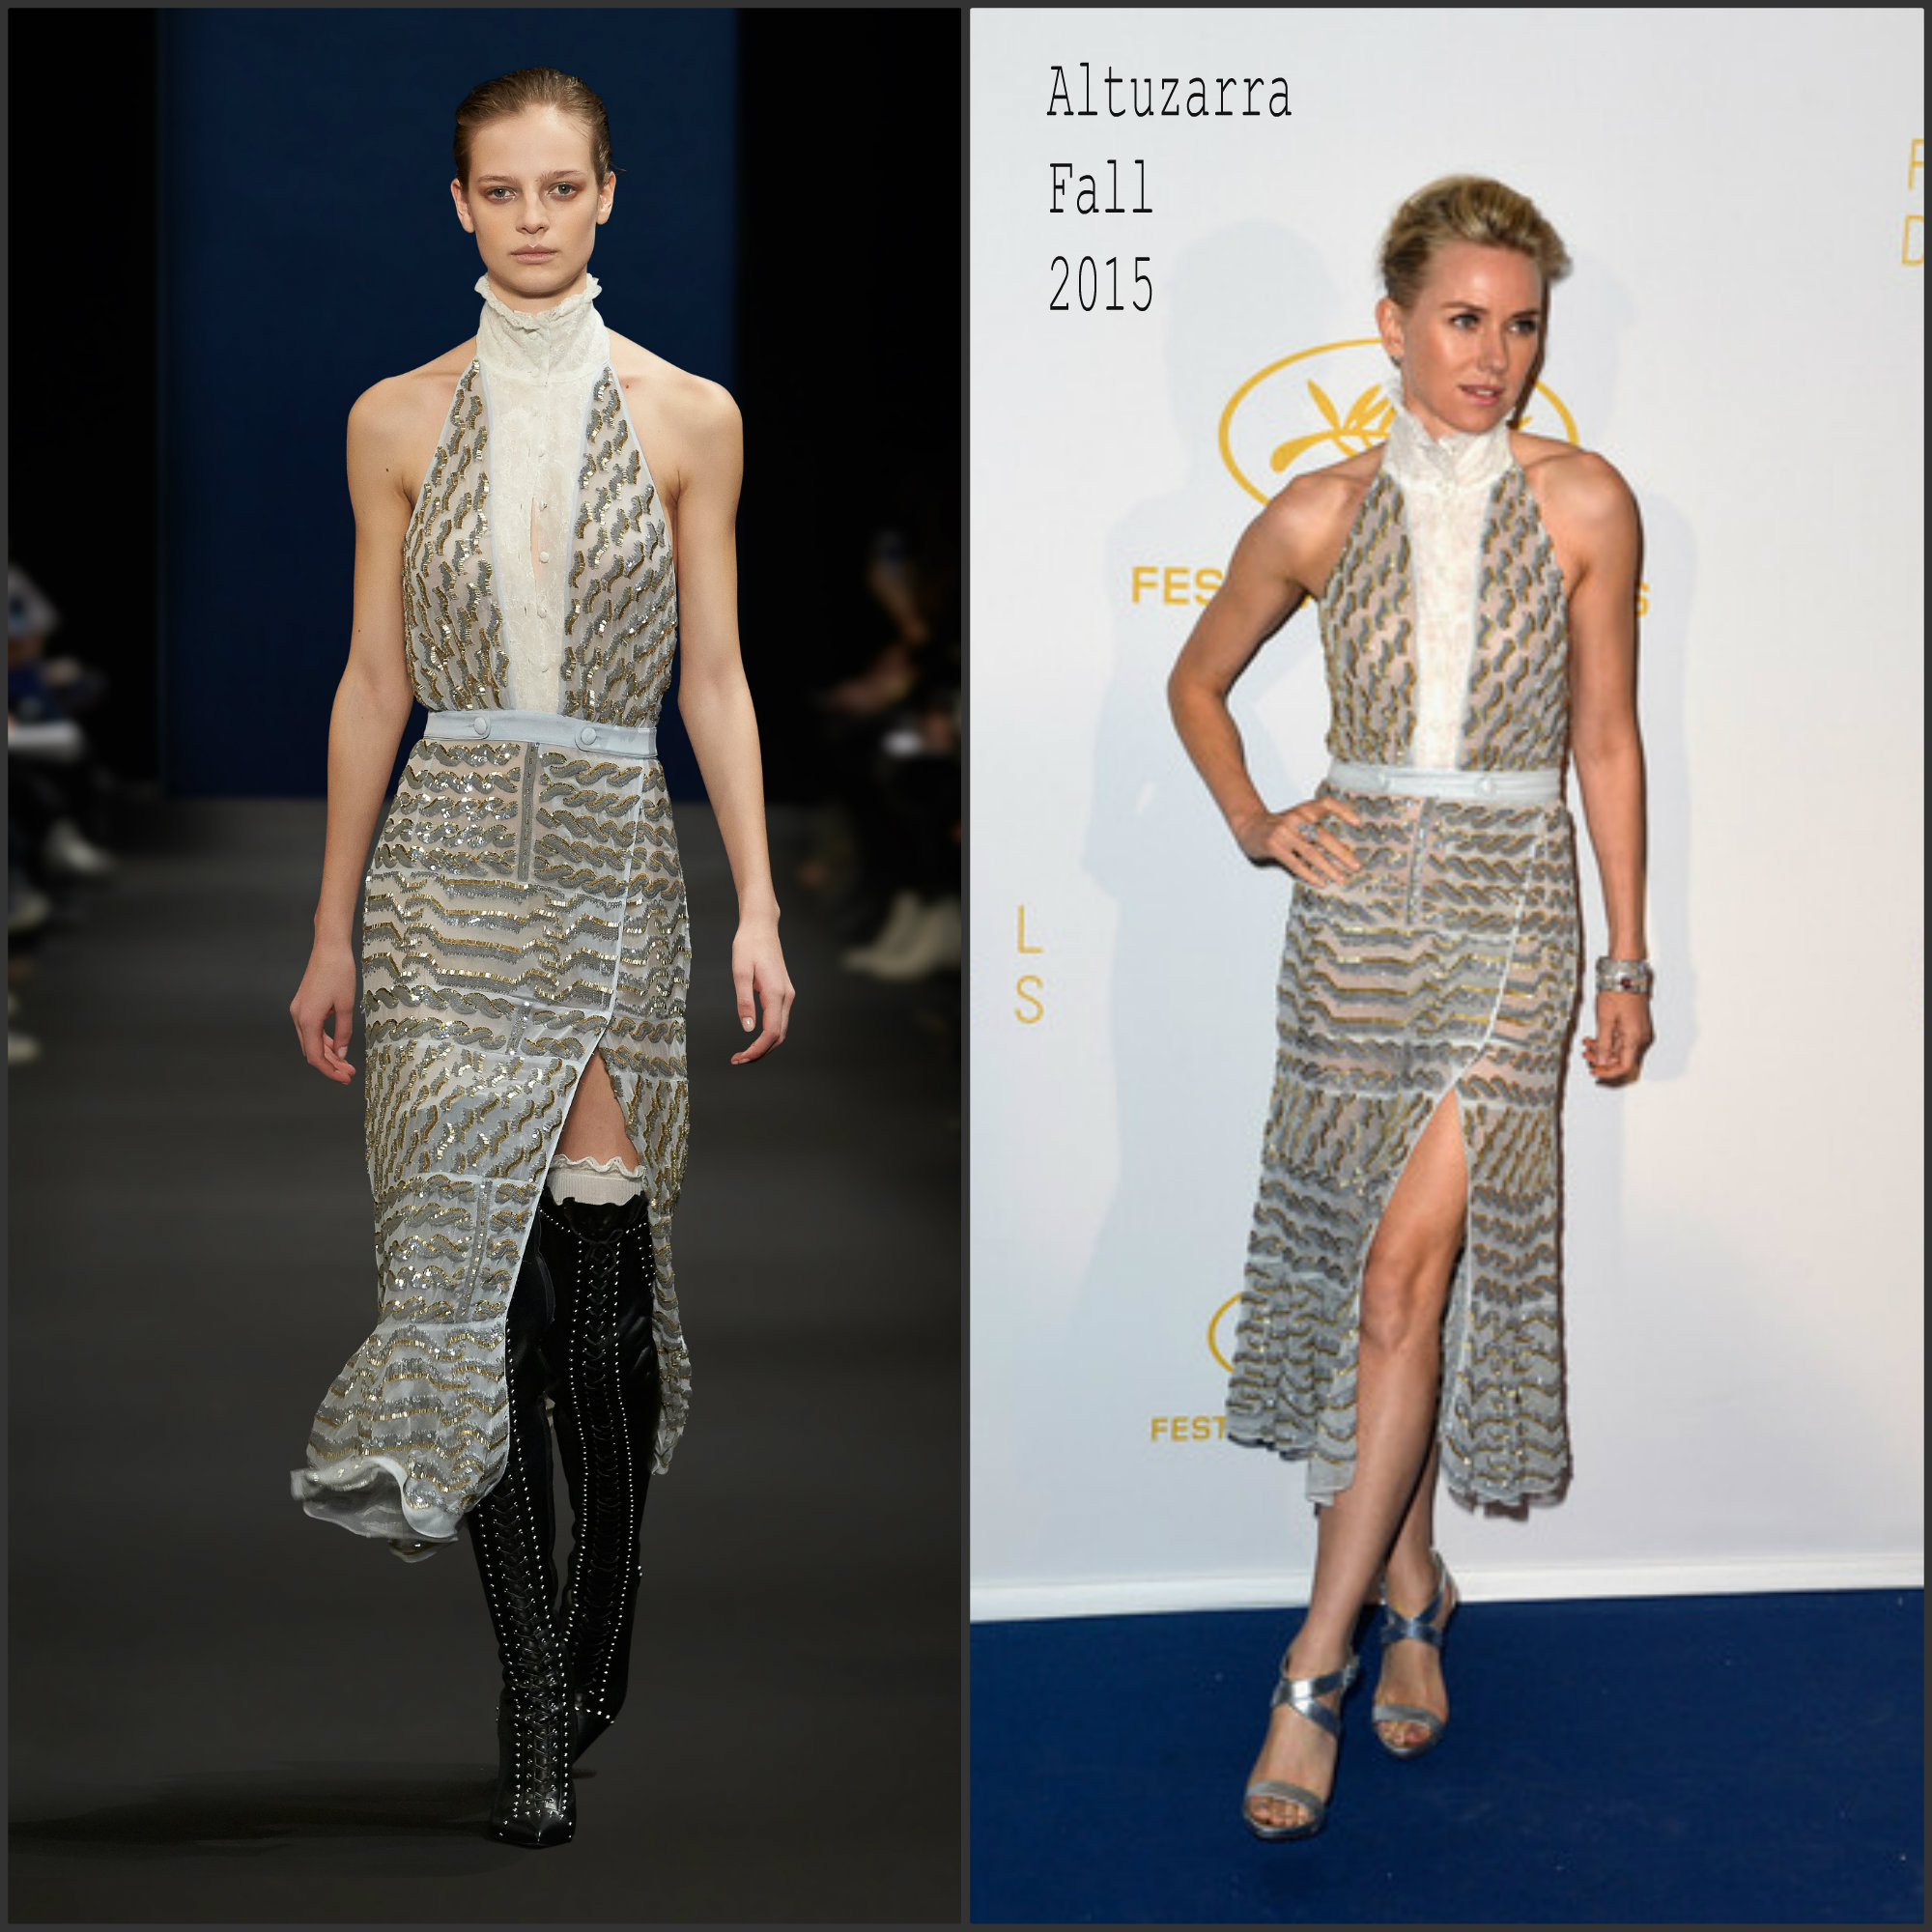 naomi-watts-in-alttuzarra-at-cannes-film-festival-opening-ceremony-dinner